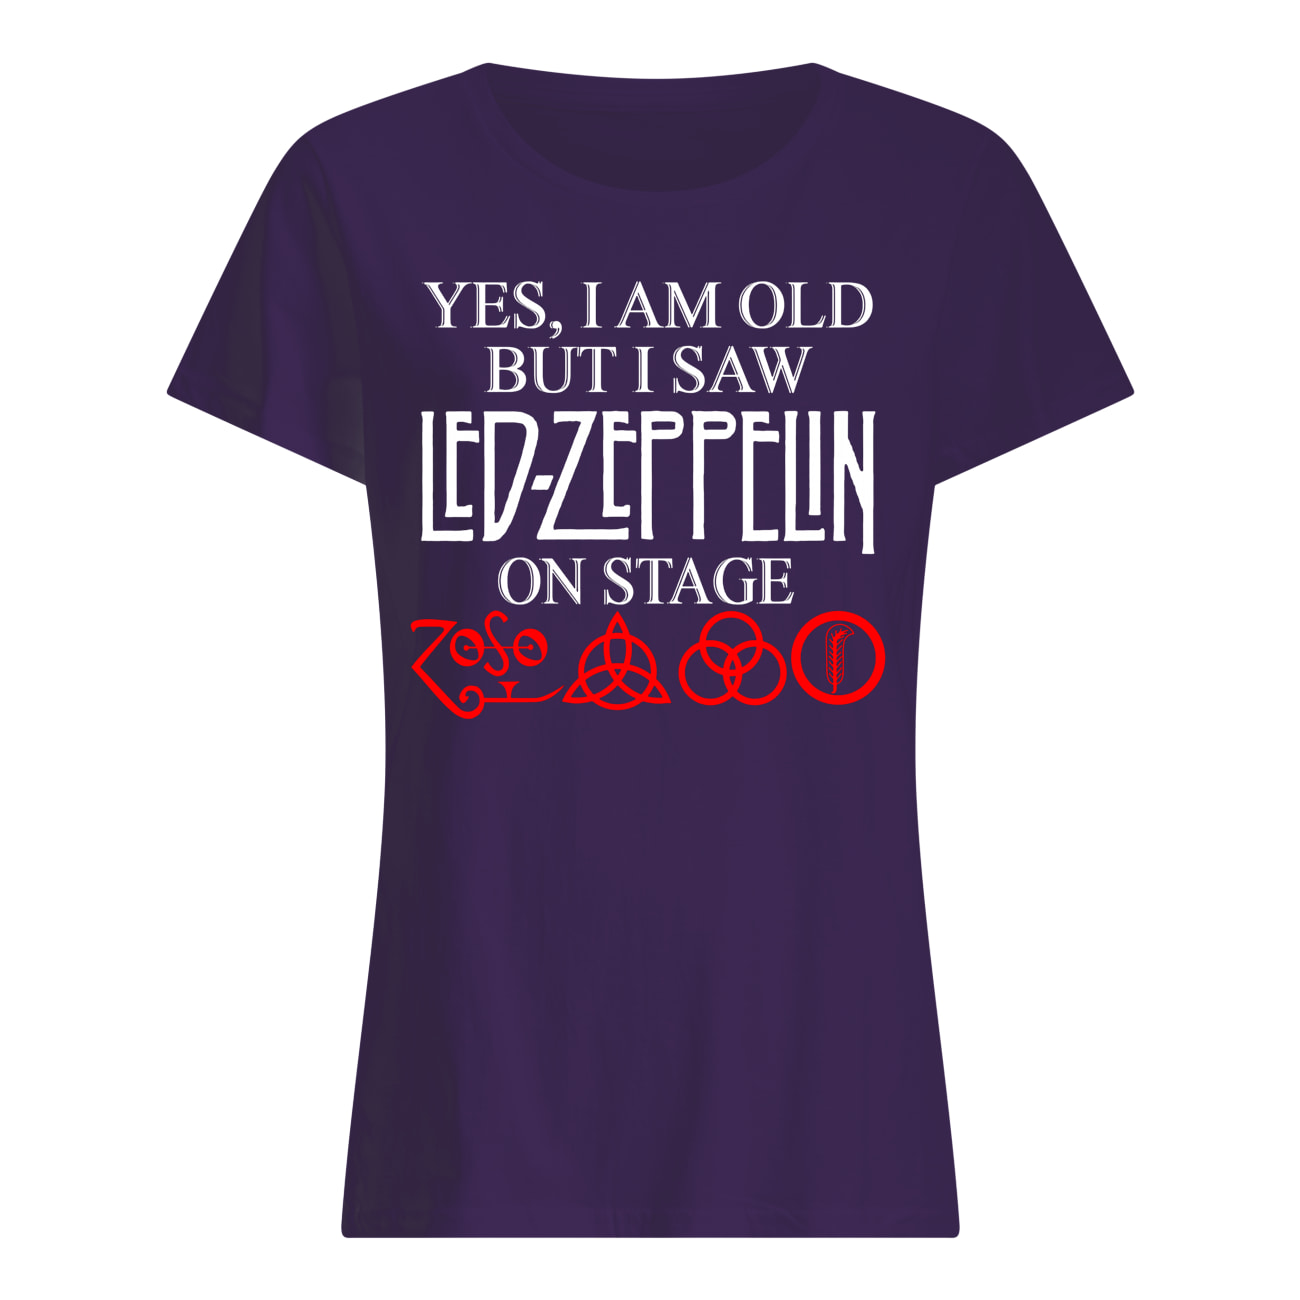 Yes i am old but i saw led-zeppelin on stage womens shirt